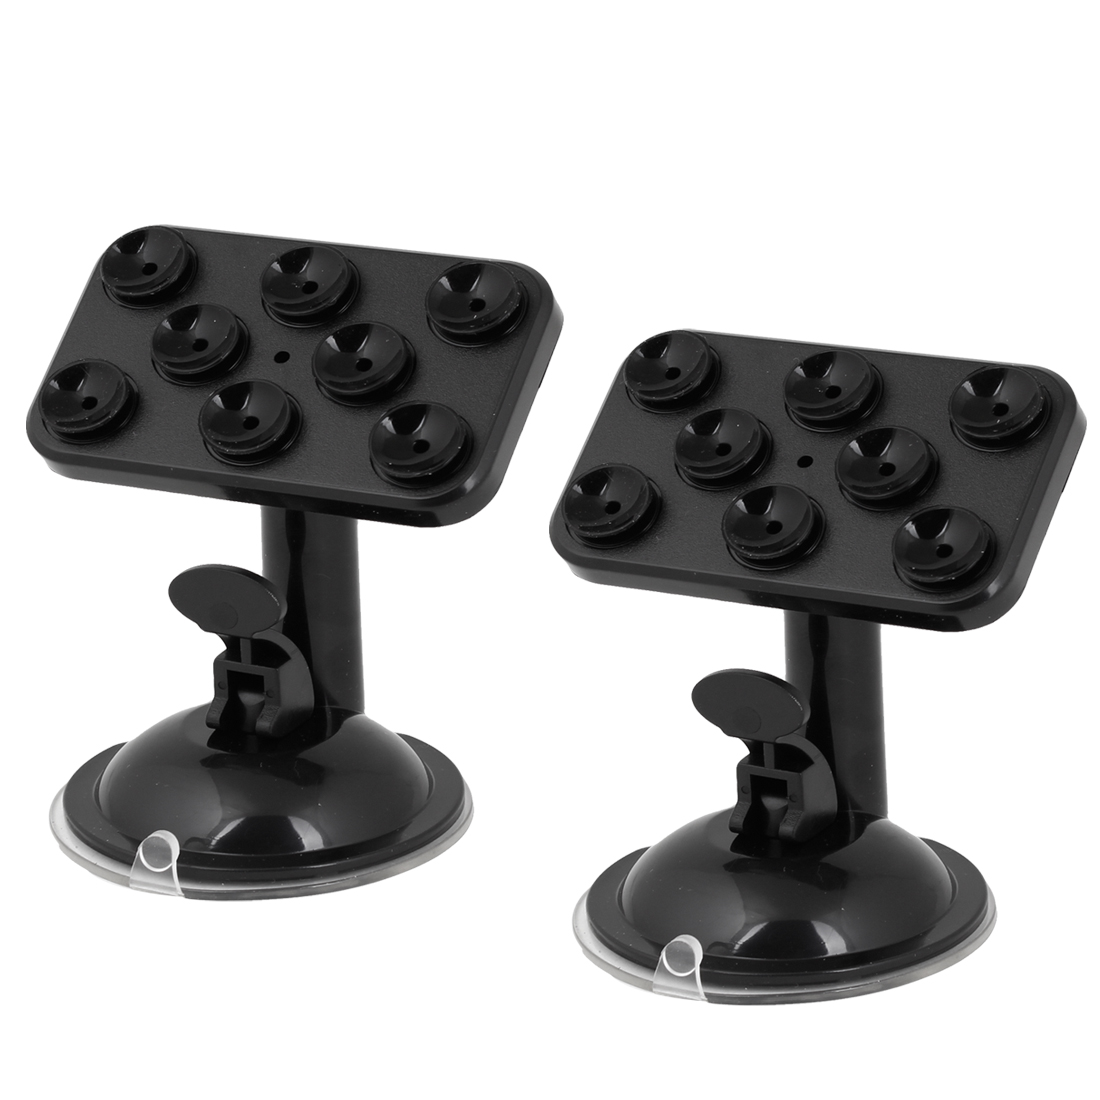 2 Pcs Black Adjustable Mobile Phone GPS MP4 Sucker Holder Stand for Auto Car